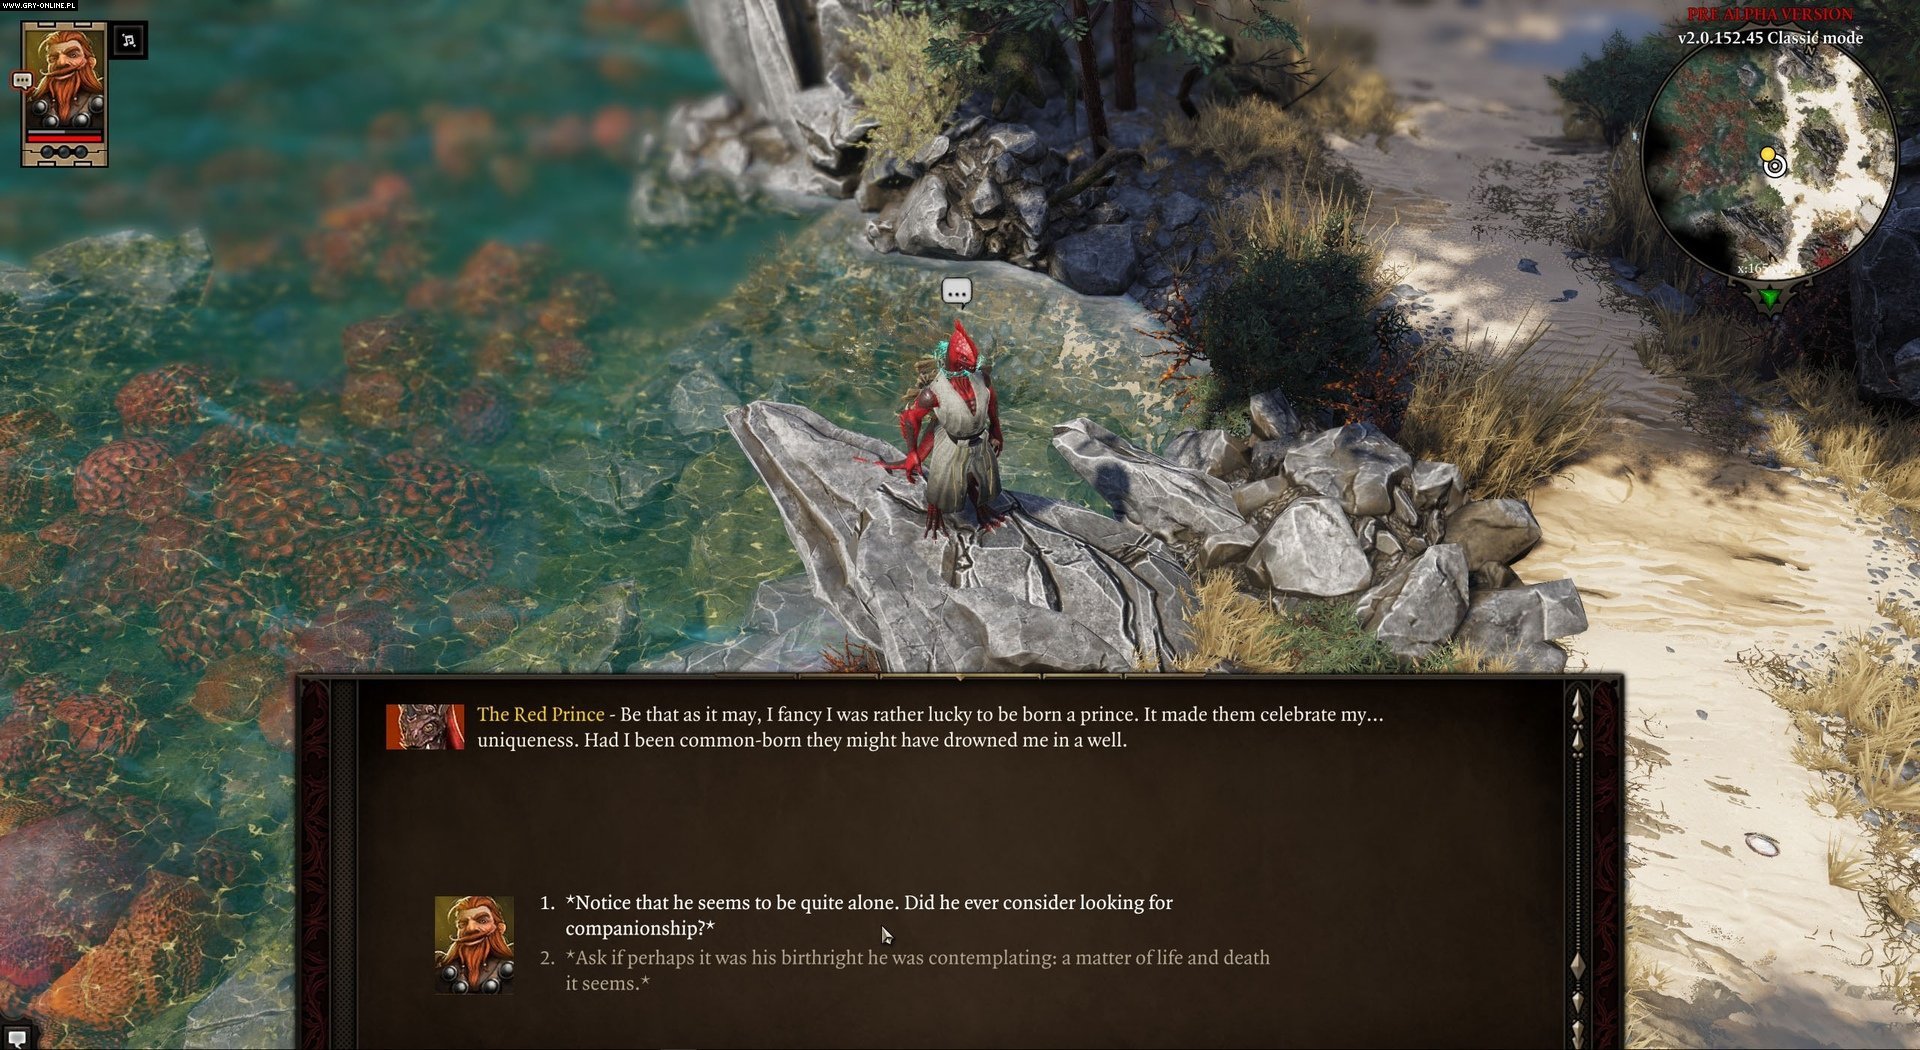 Divinity: Original Sin II - Definitive Edition PC, PS4, XONE Games Image 240/304, Larian Studios